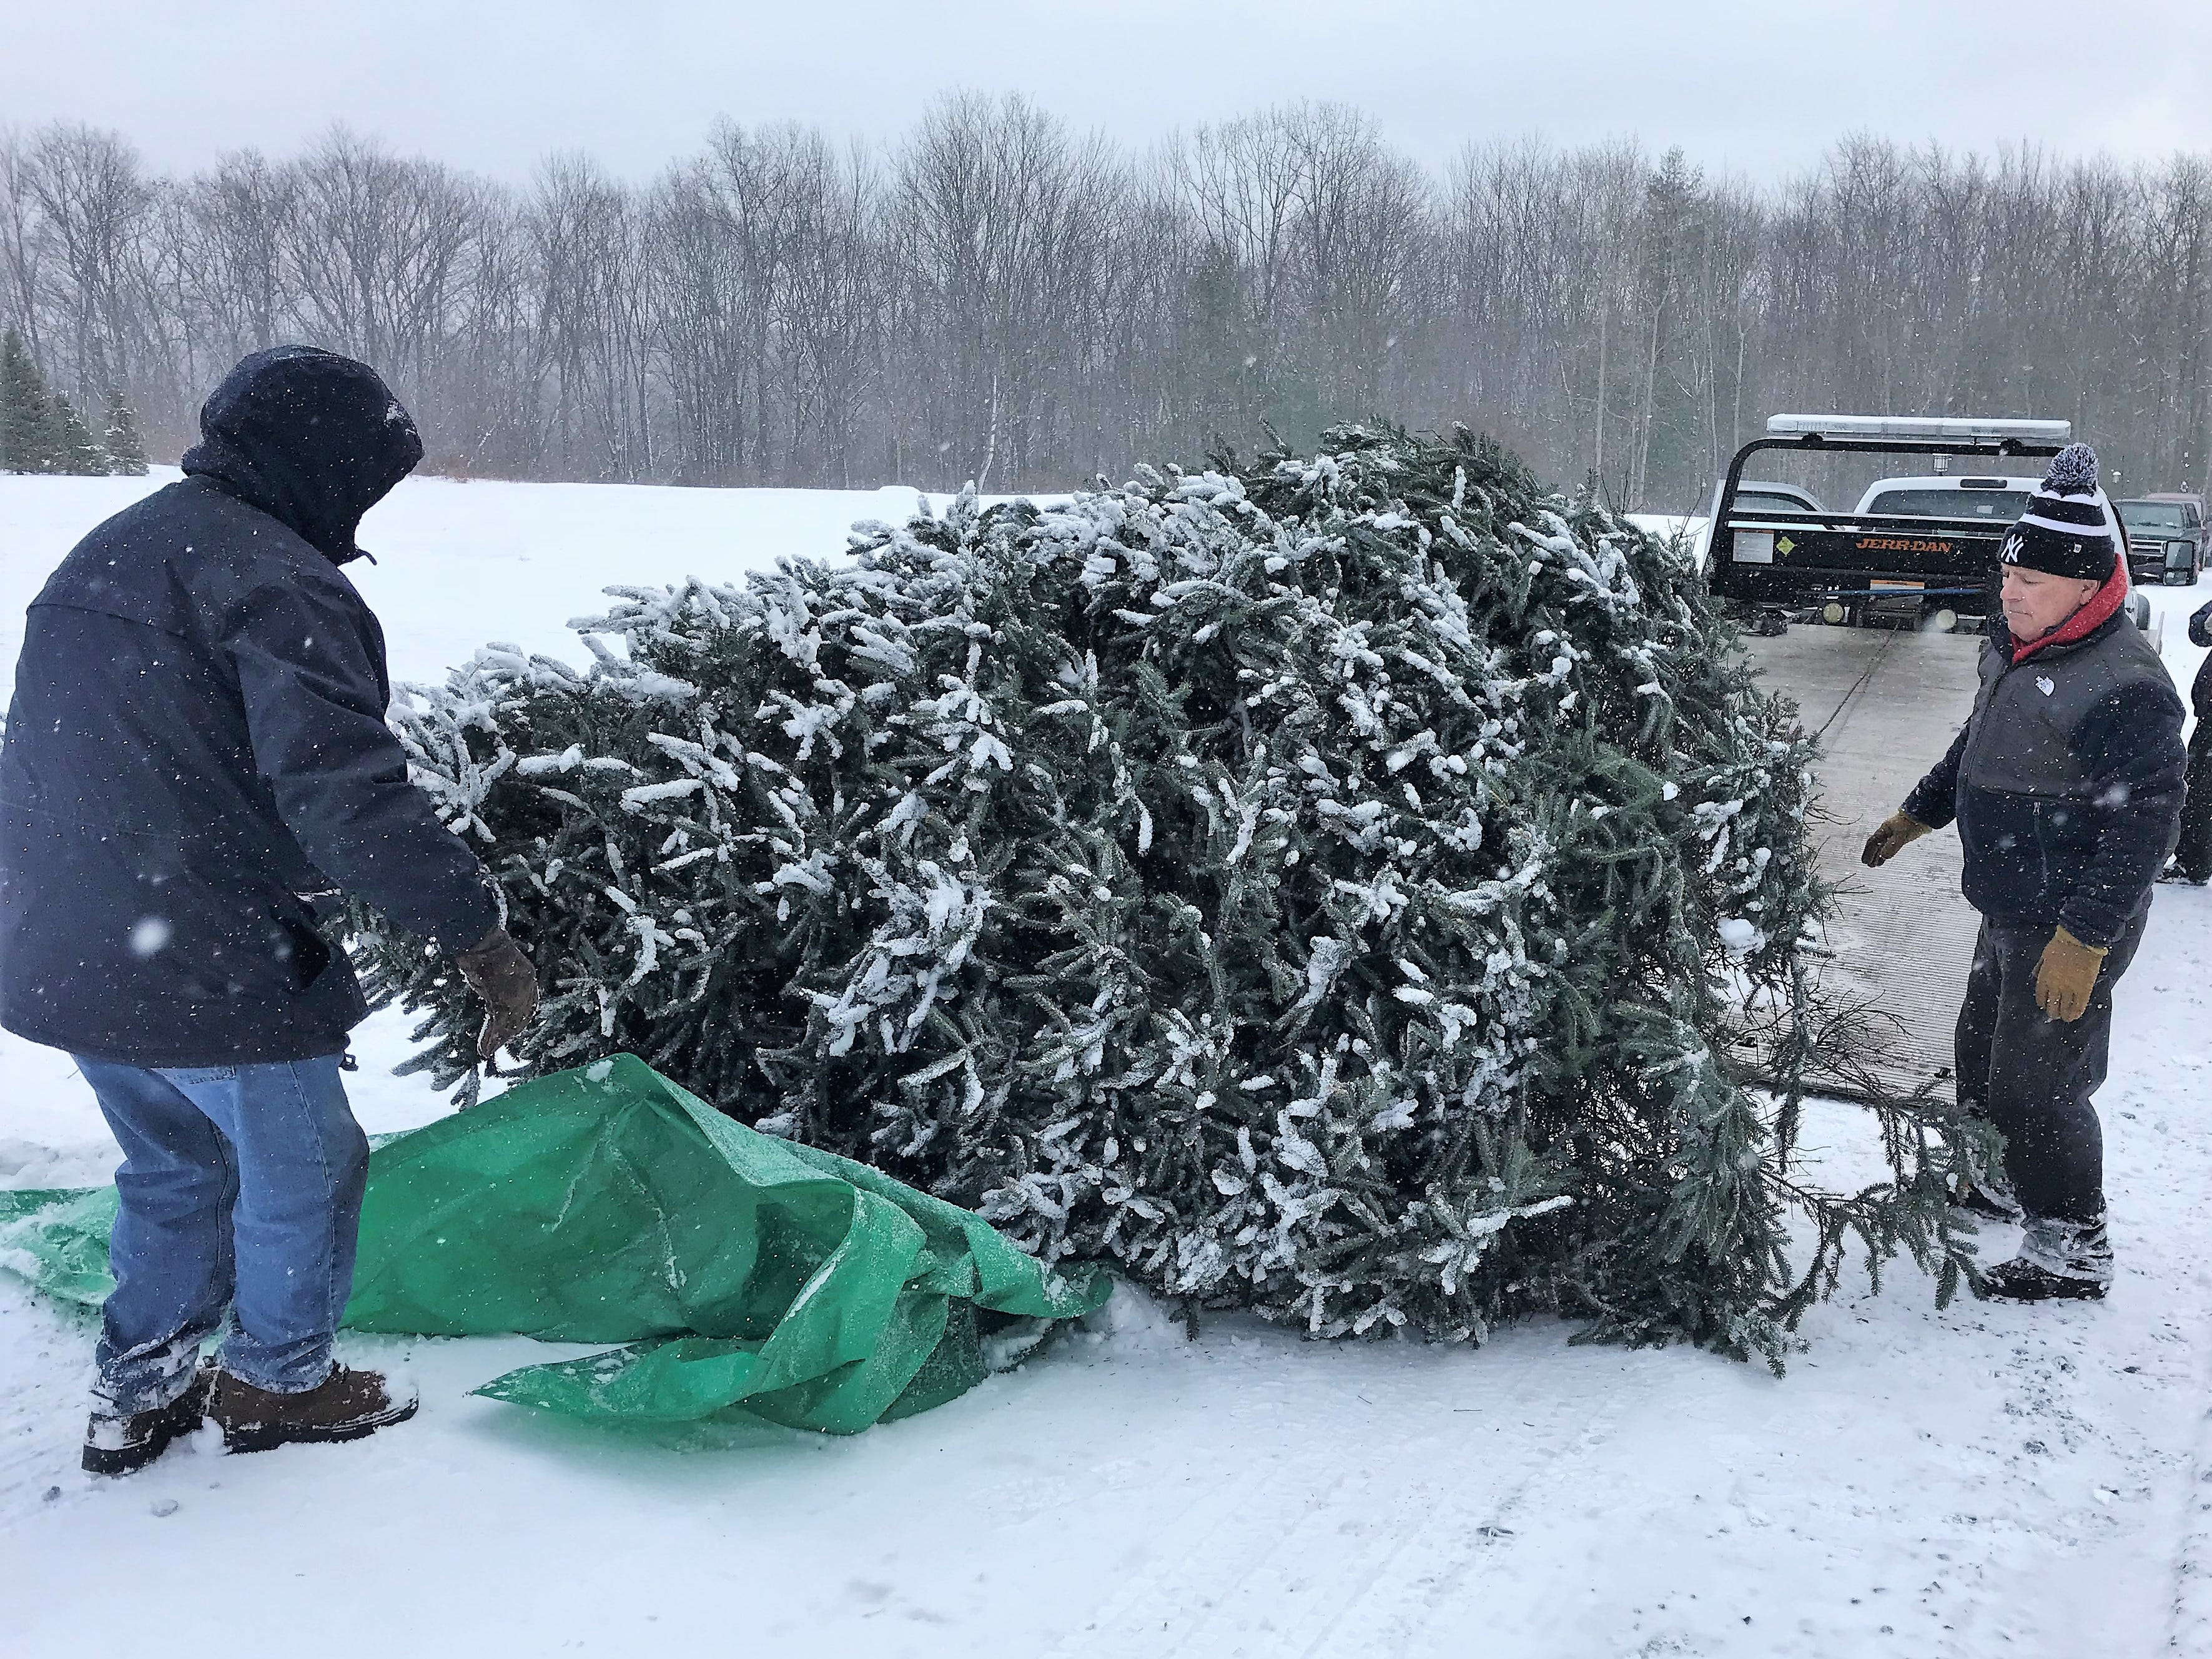 A Norway spruce donated by Steve Matkosky for the annual Arctic League broadcast waits to be loaded on a tow truck Wednesday morning.